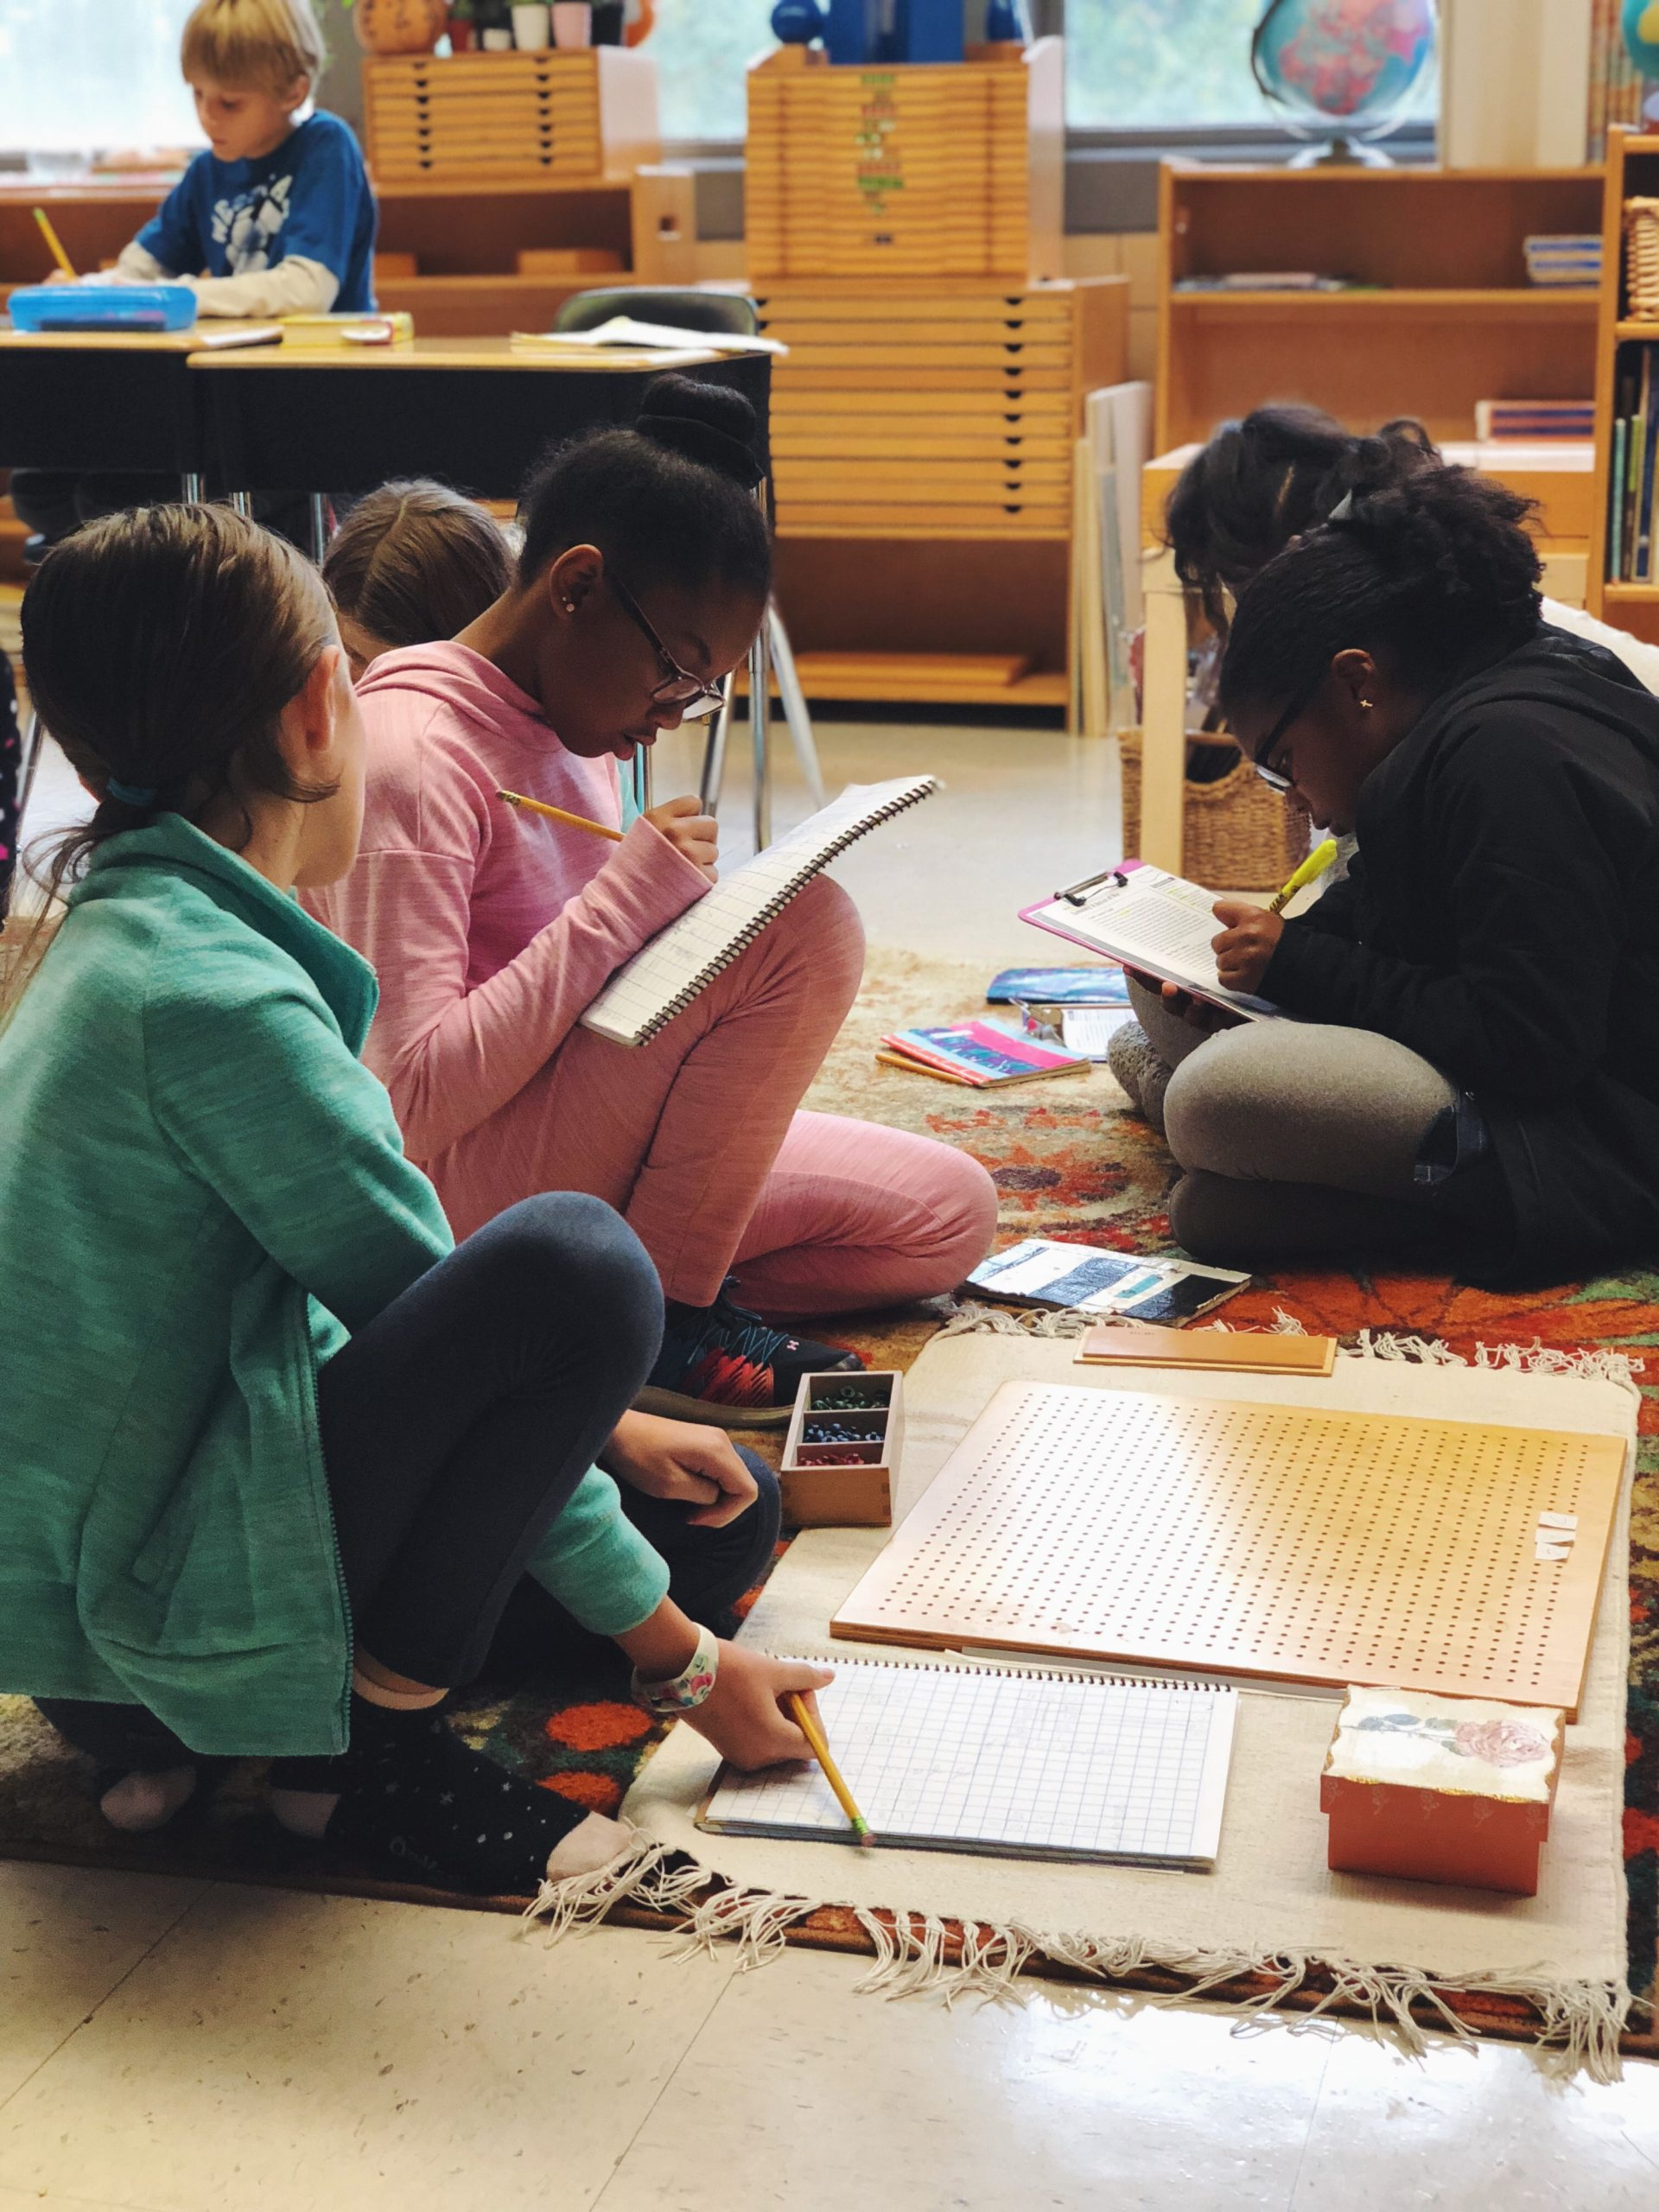 Diverse children in a public Montessori elementary classroom are engrossed in collaborative work.